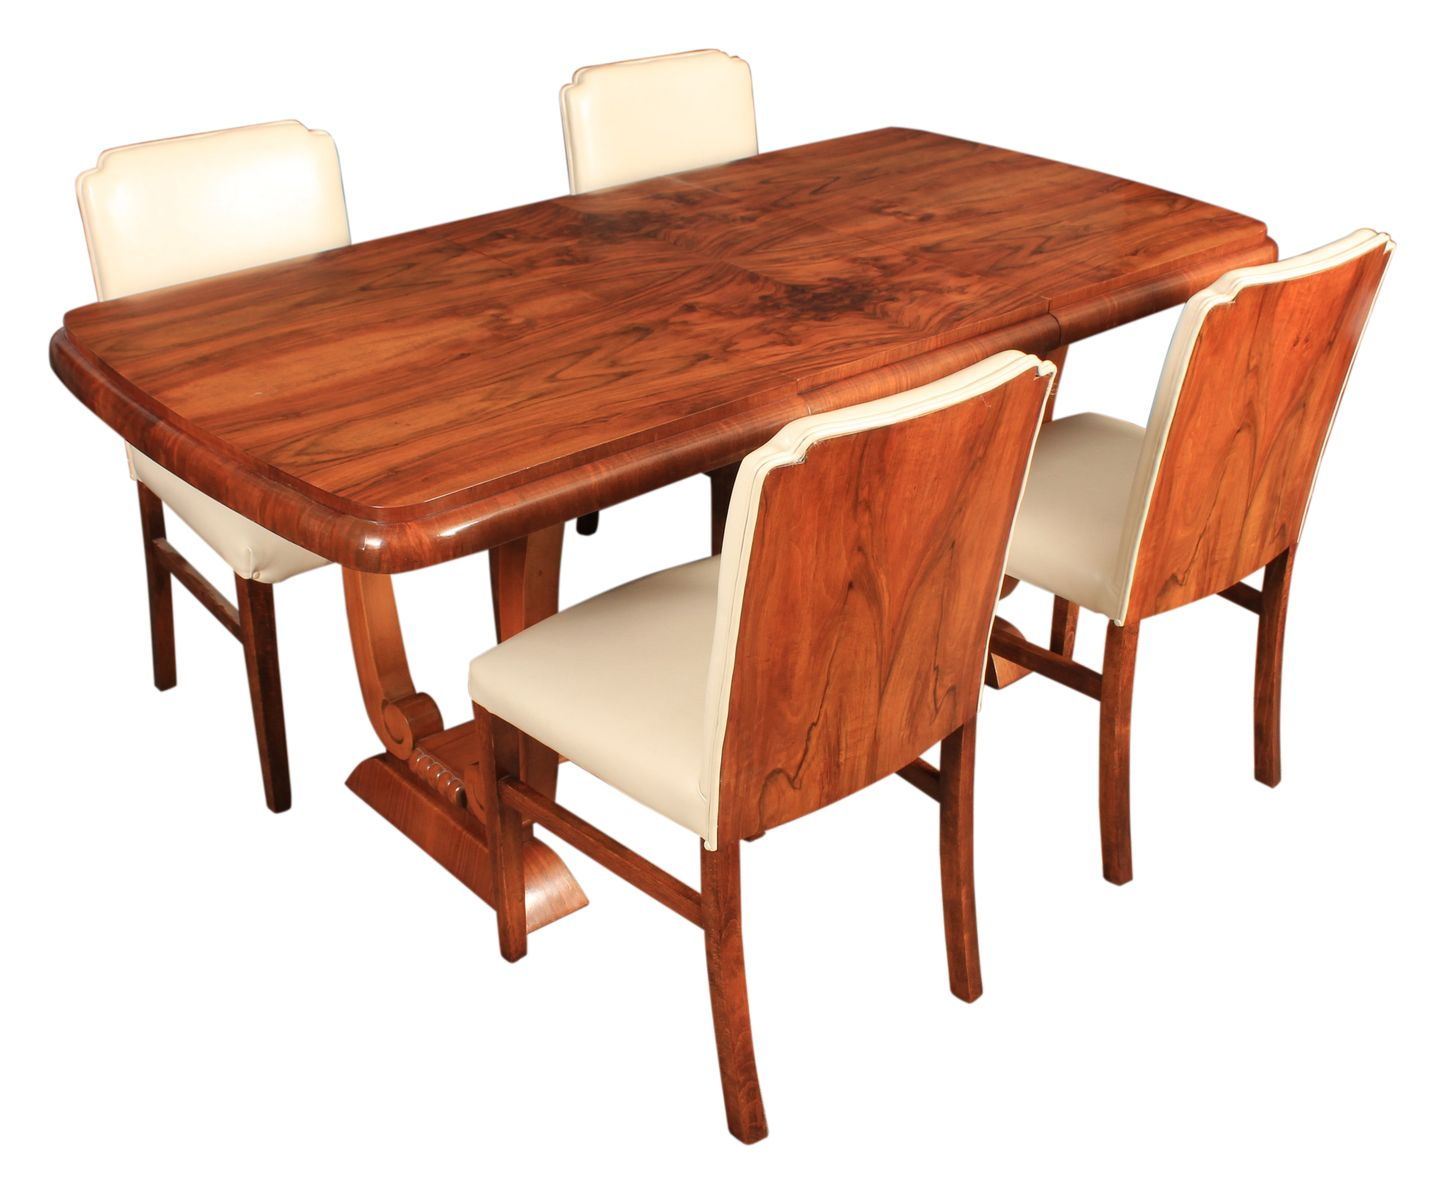 Awe Inspiring Art Deco Leather Walnut Dining Table Set 1920S Cjindustries Chair Design For Home Cjindustriesco